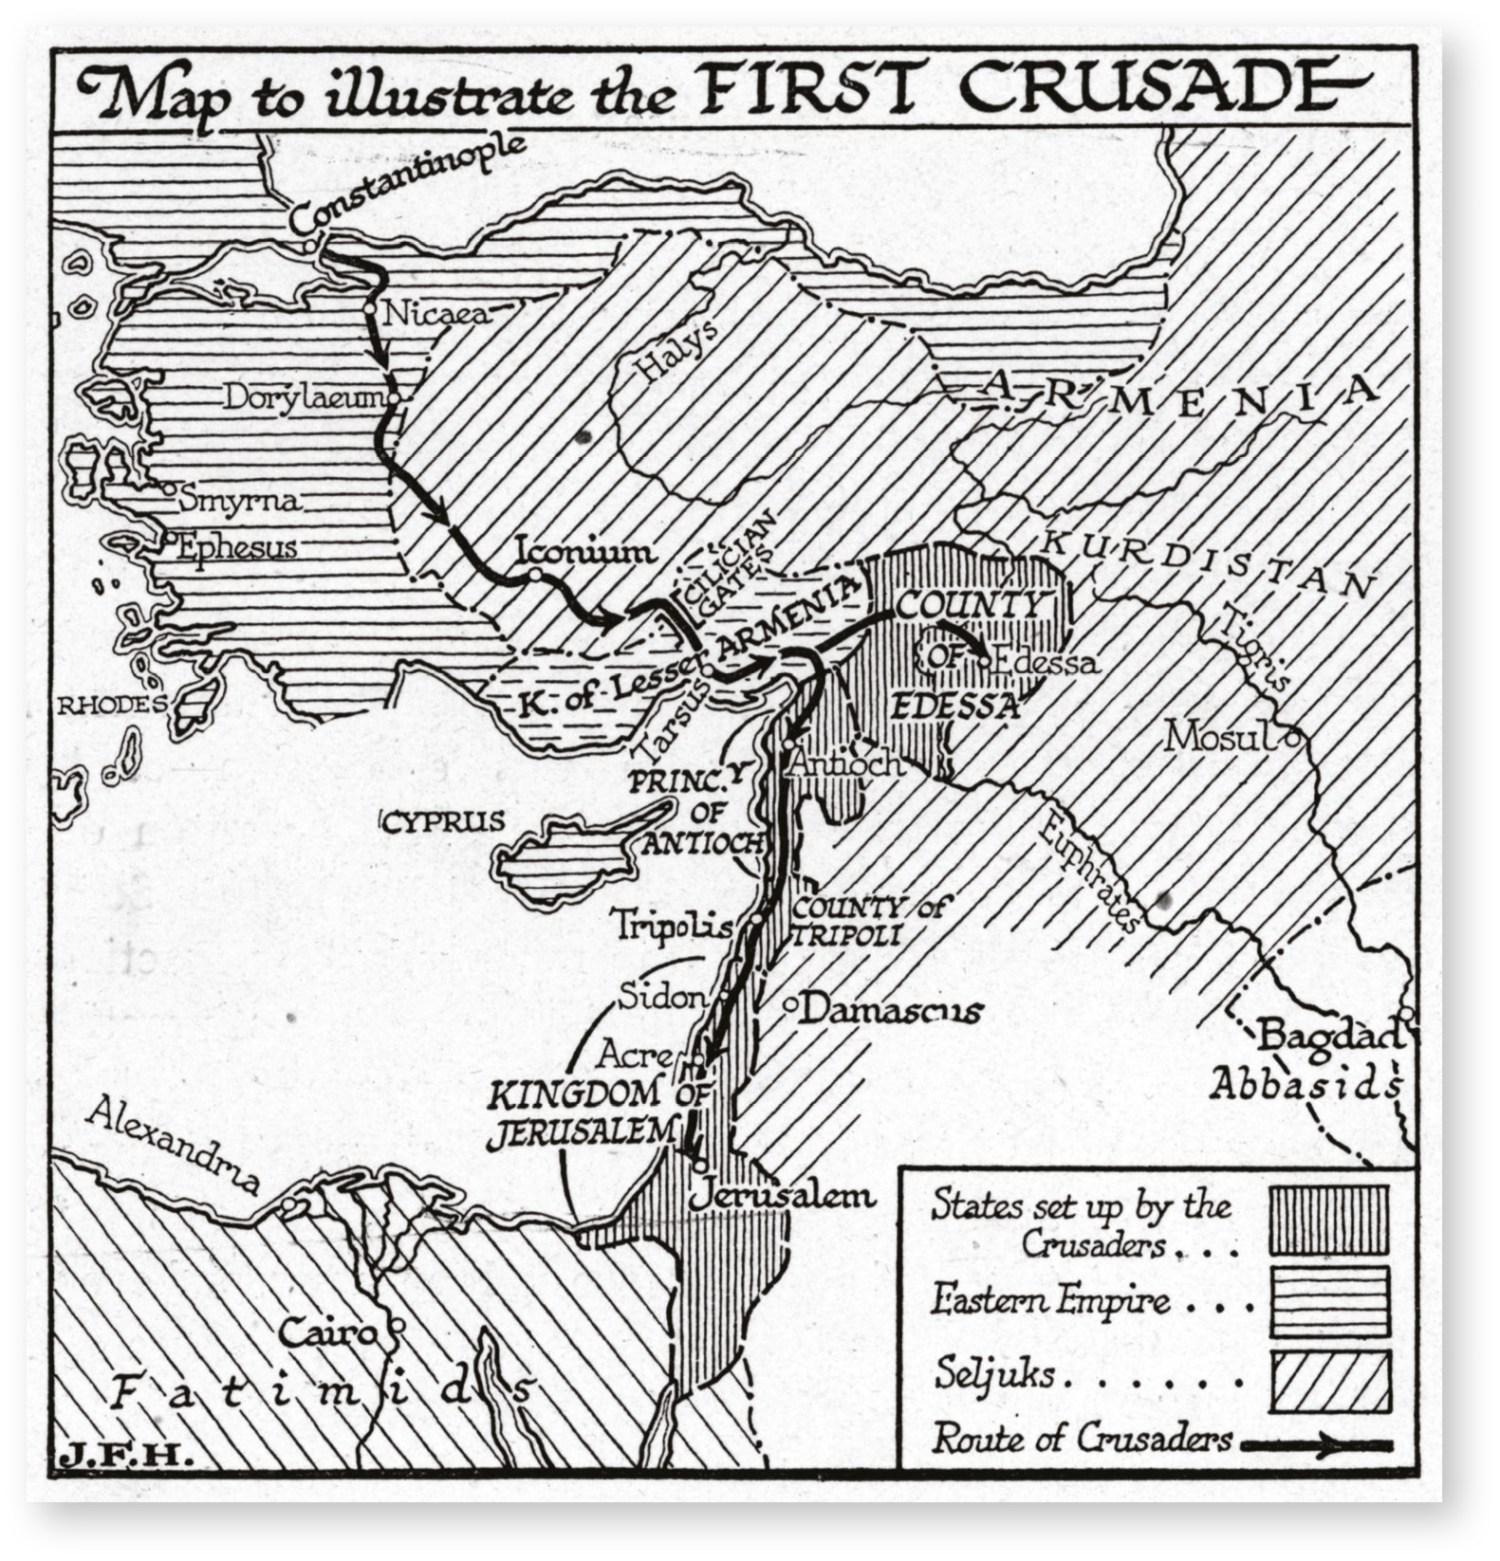 ABOVE Map of the four Crusader states set up after the First Crusade (1096-1099). The challenge was to maintain and defend them over the following two centuries.